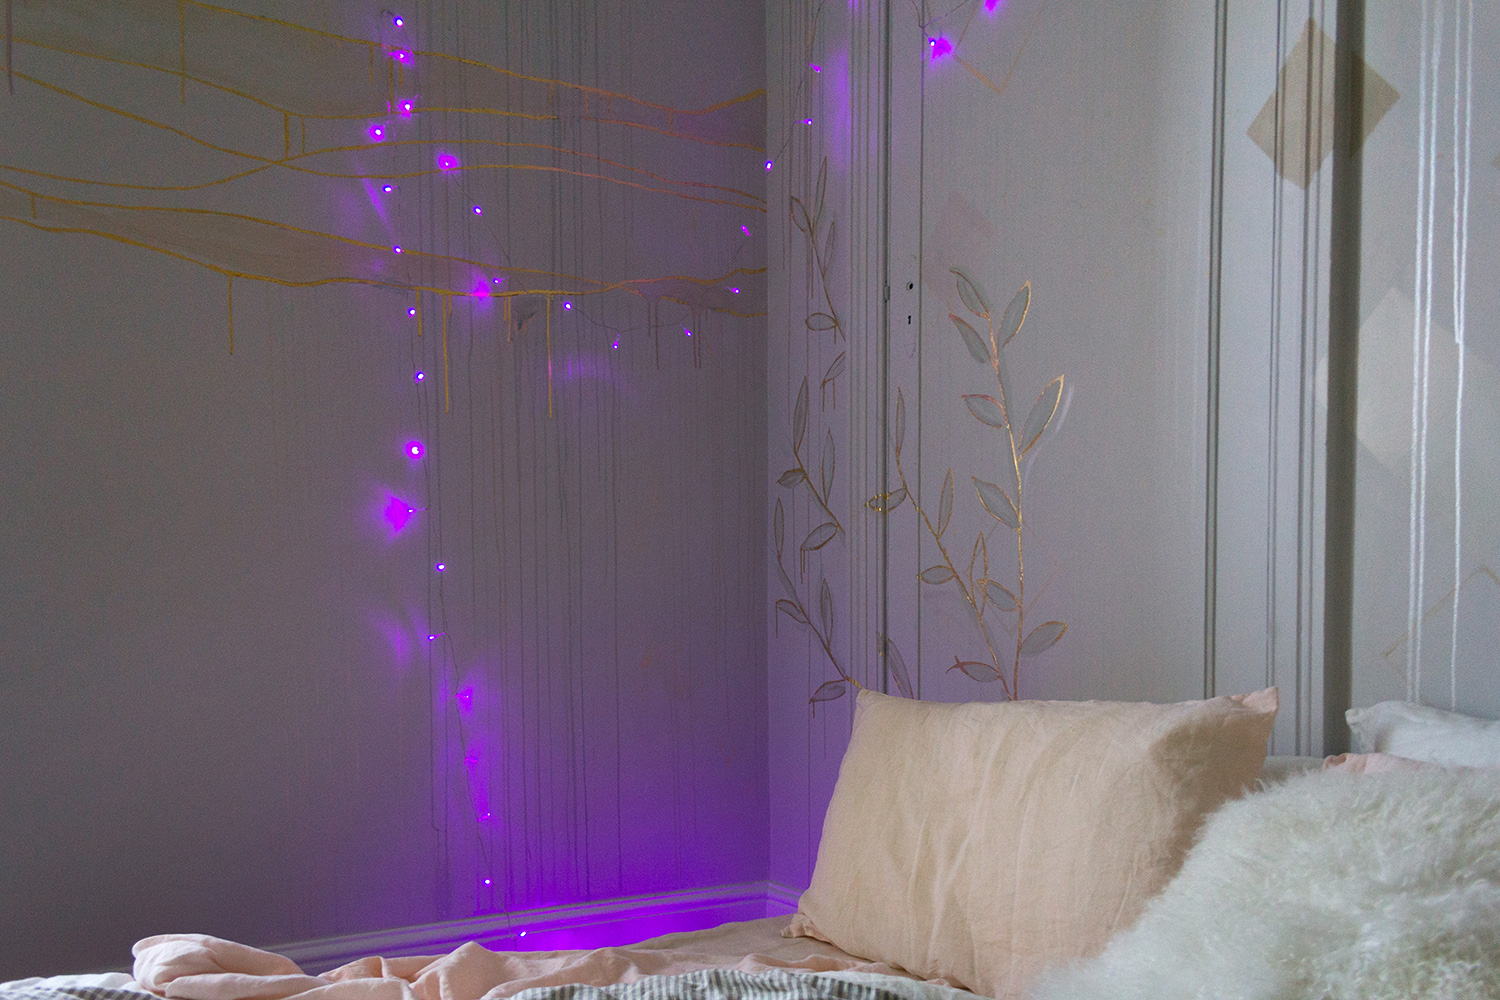 Gold leaf feature wall in cosy bedroom, the wall features waves and gold foliage lit up by purple fairy lights.